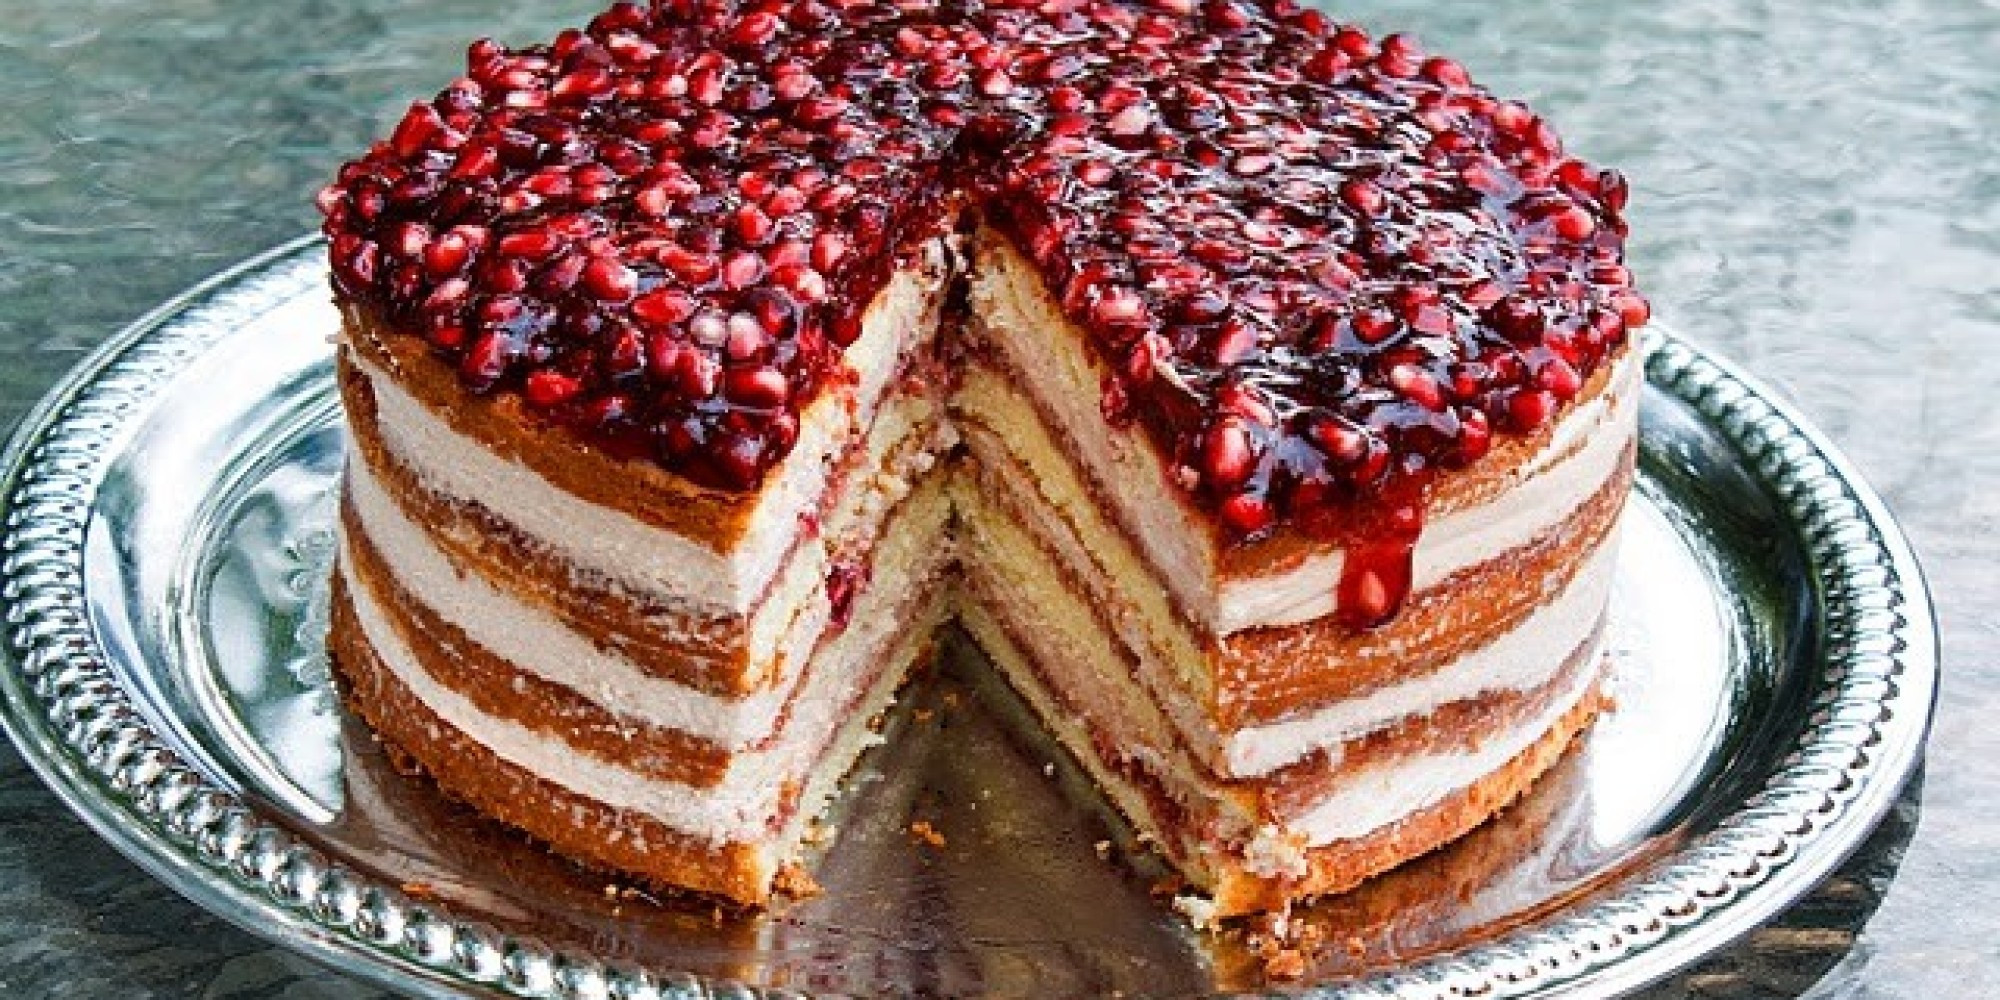 Best Desserts For Christmas  The Most Stunning Christmas Dessert Recipes Ever PHOTOS